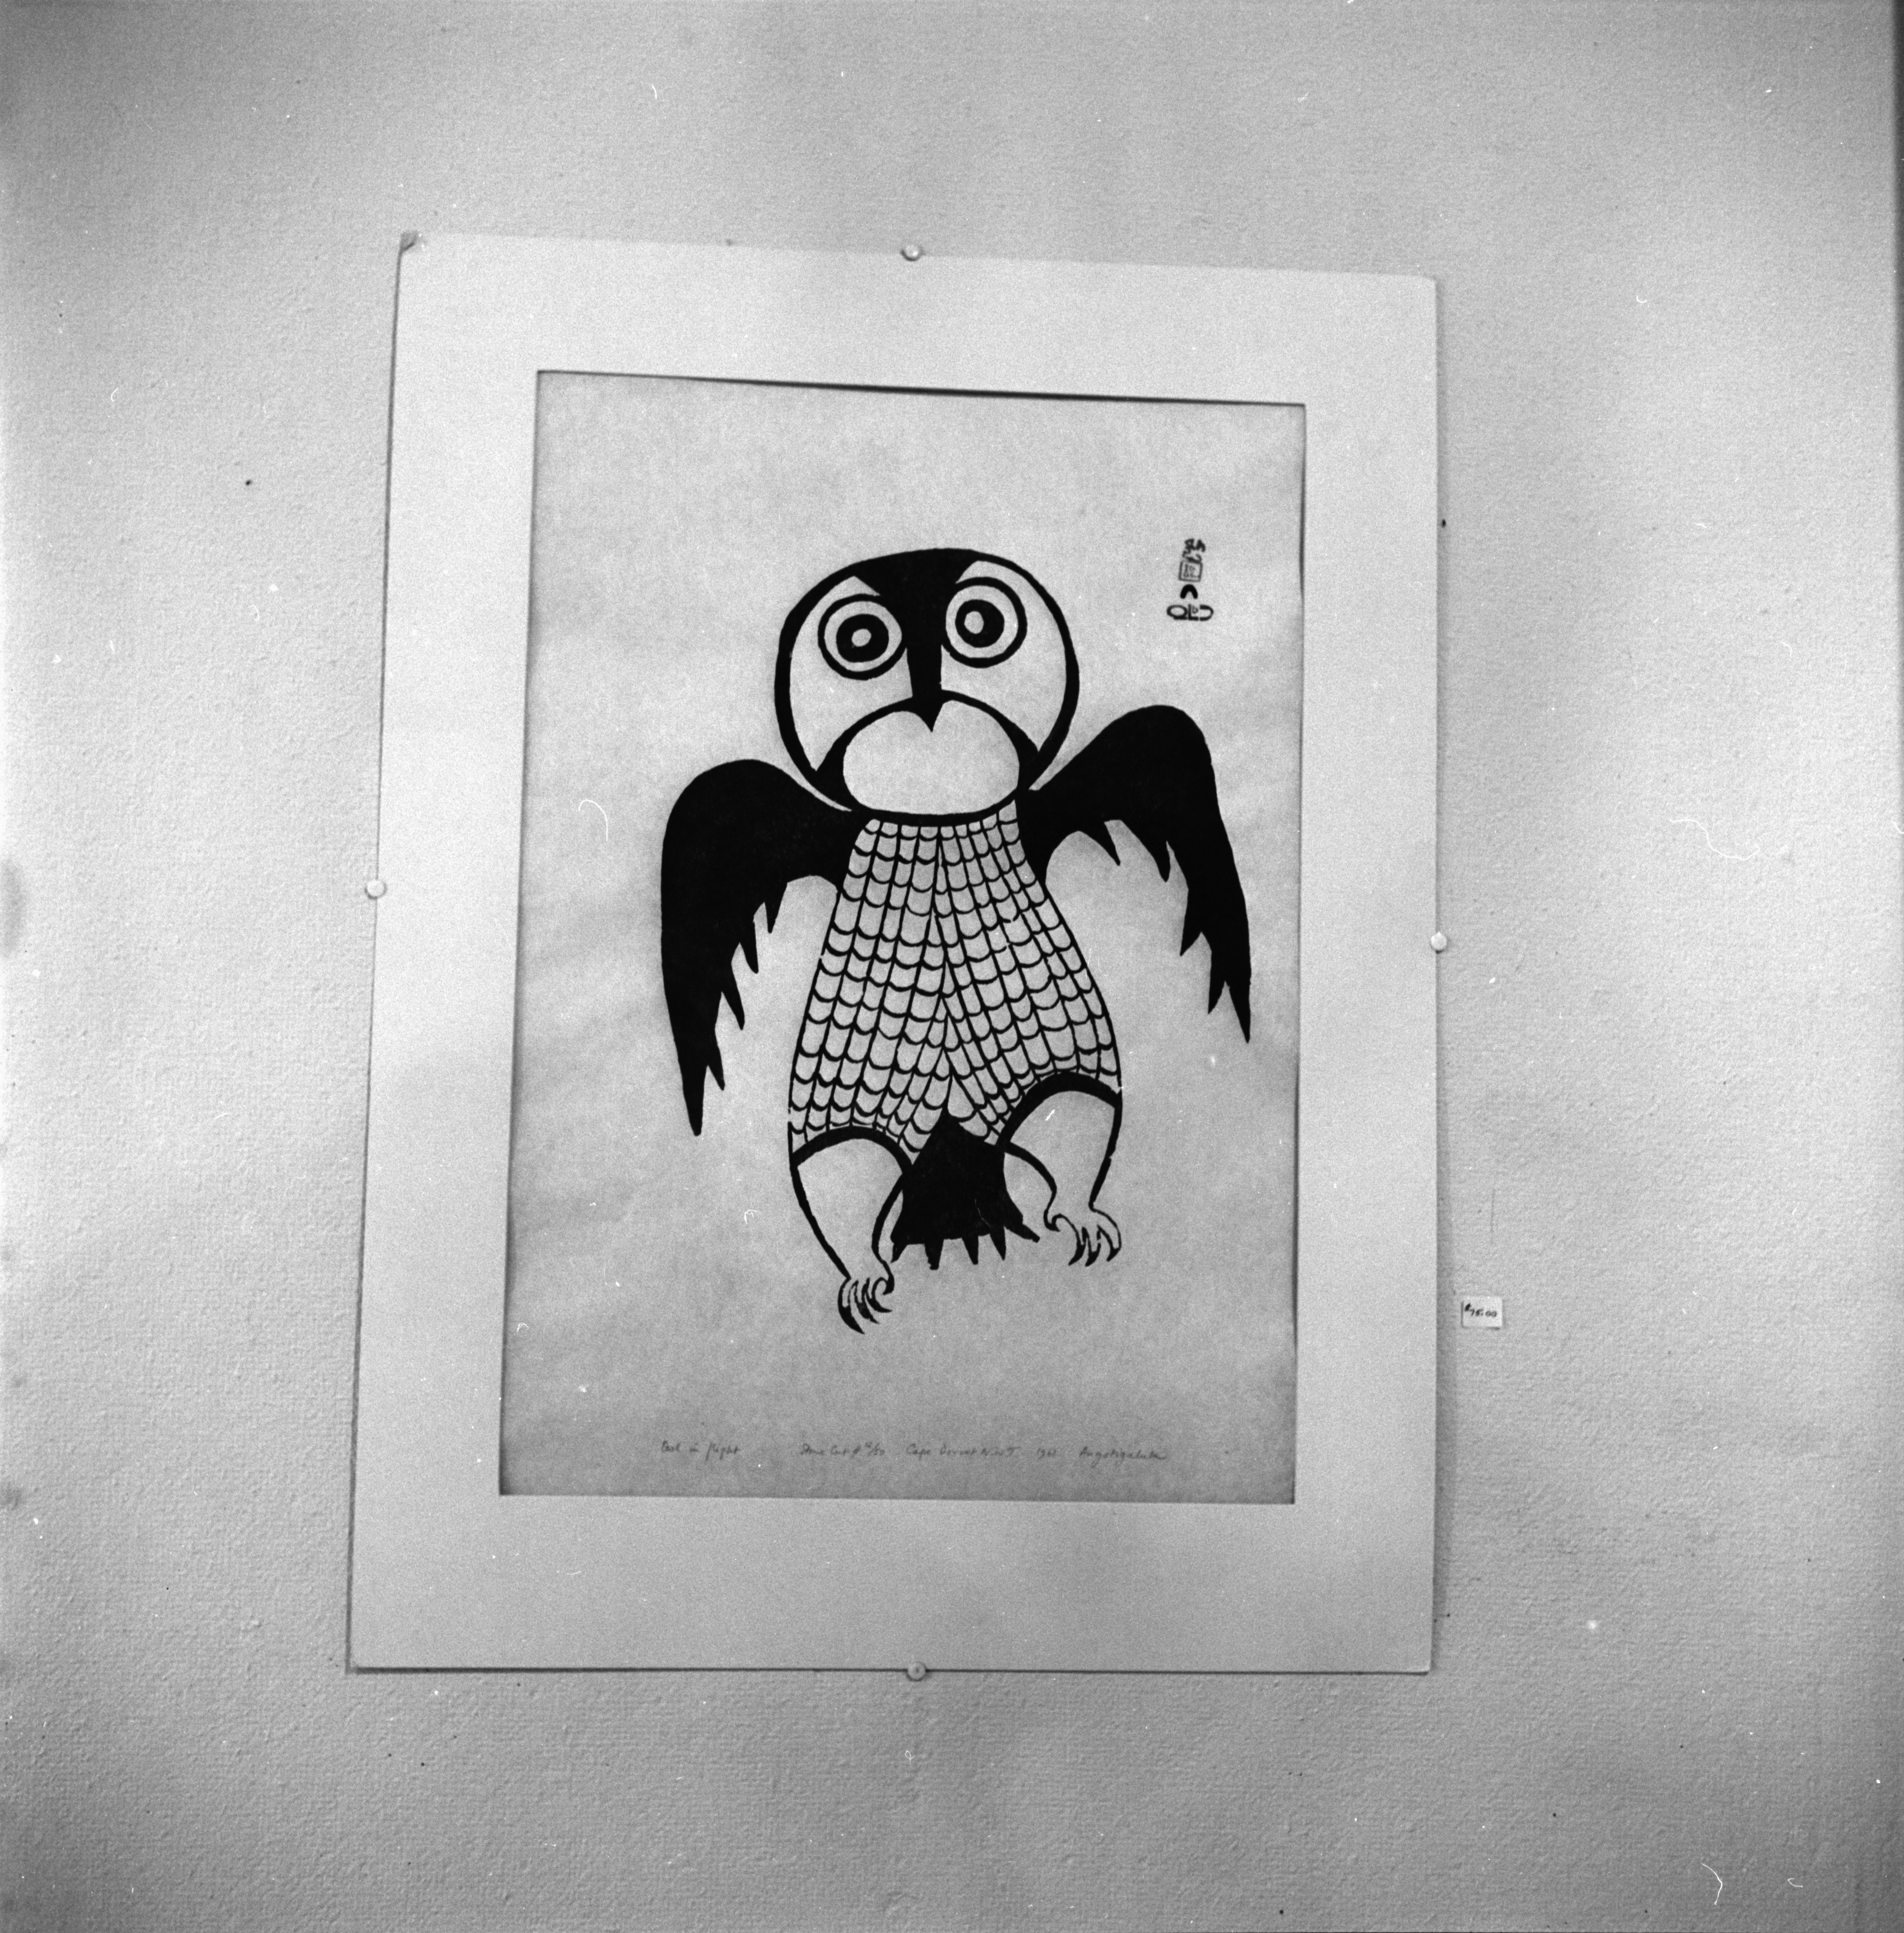 Photograph of 'Owl in Flight' by Inuit Artist Angotigaluk Teevee, March 1967 image